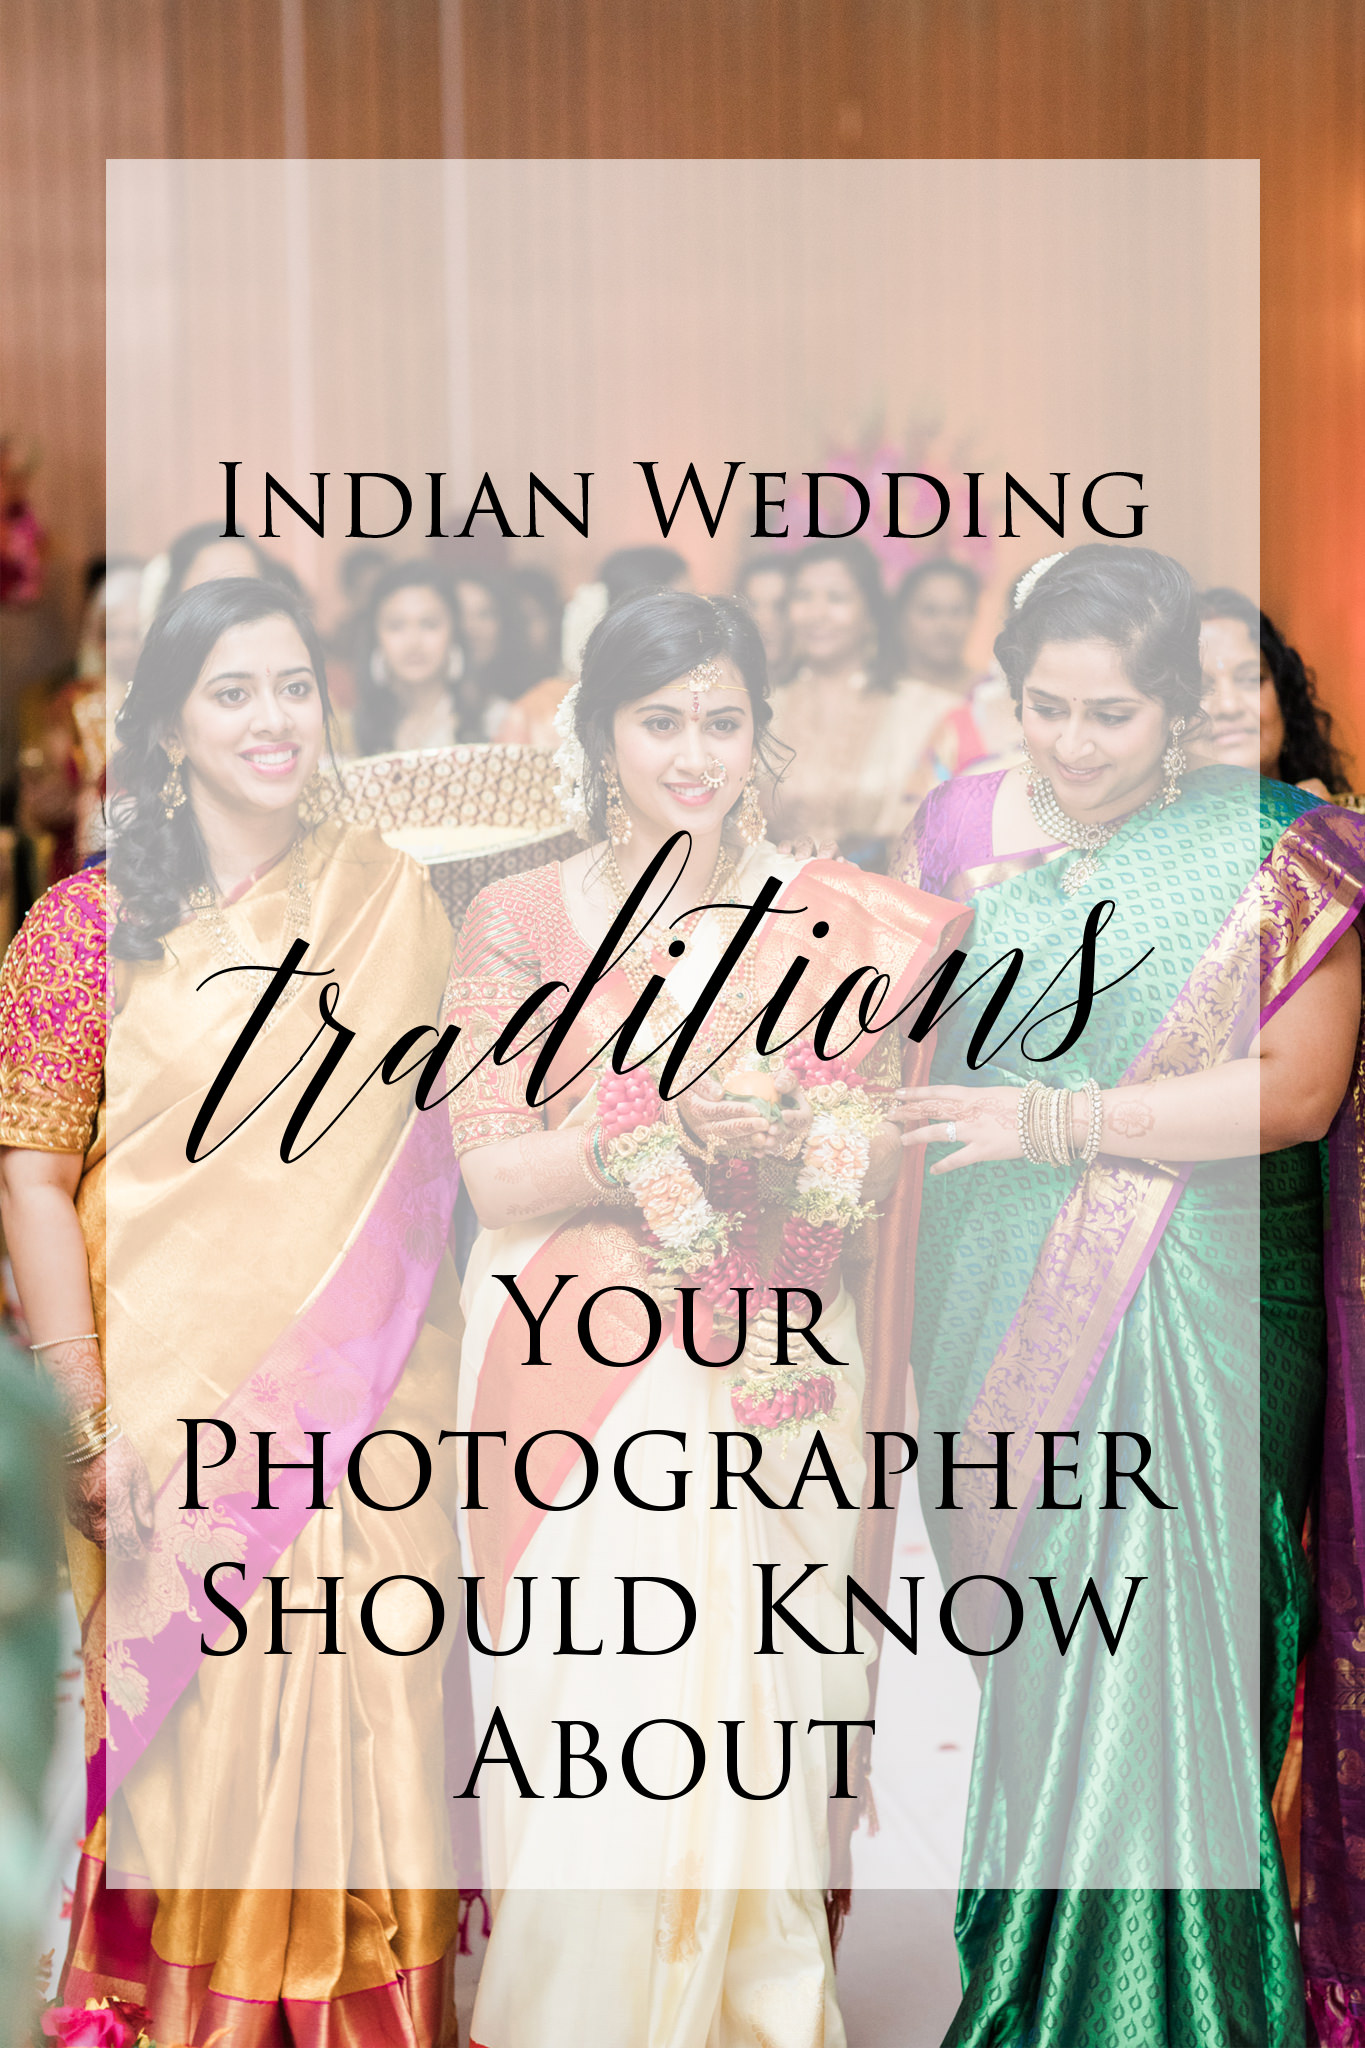 Indian-Wedding-Traditions.jpg